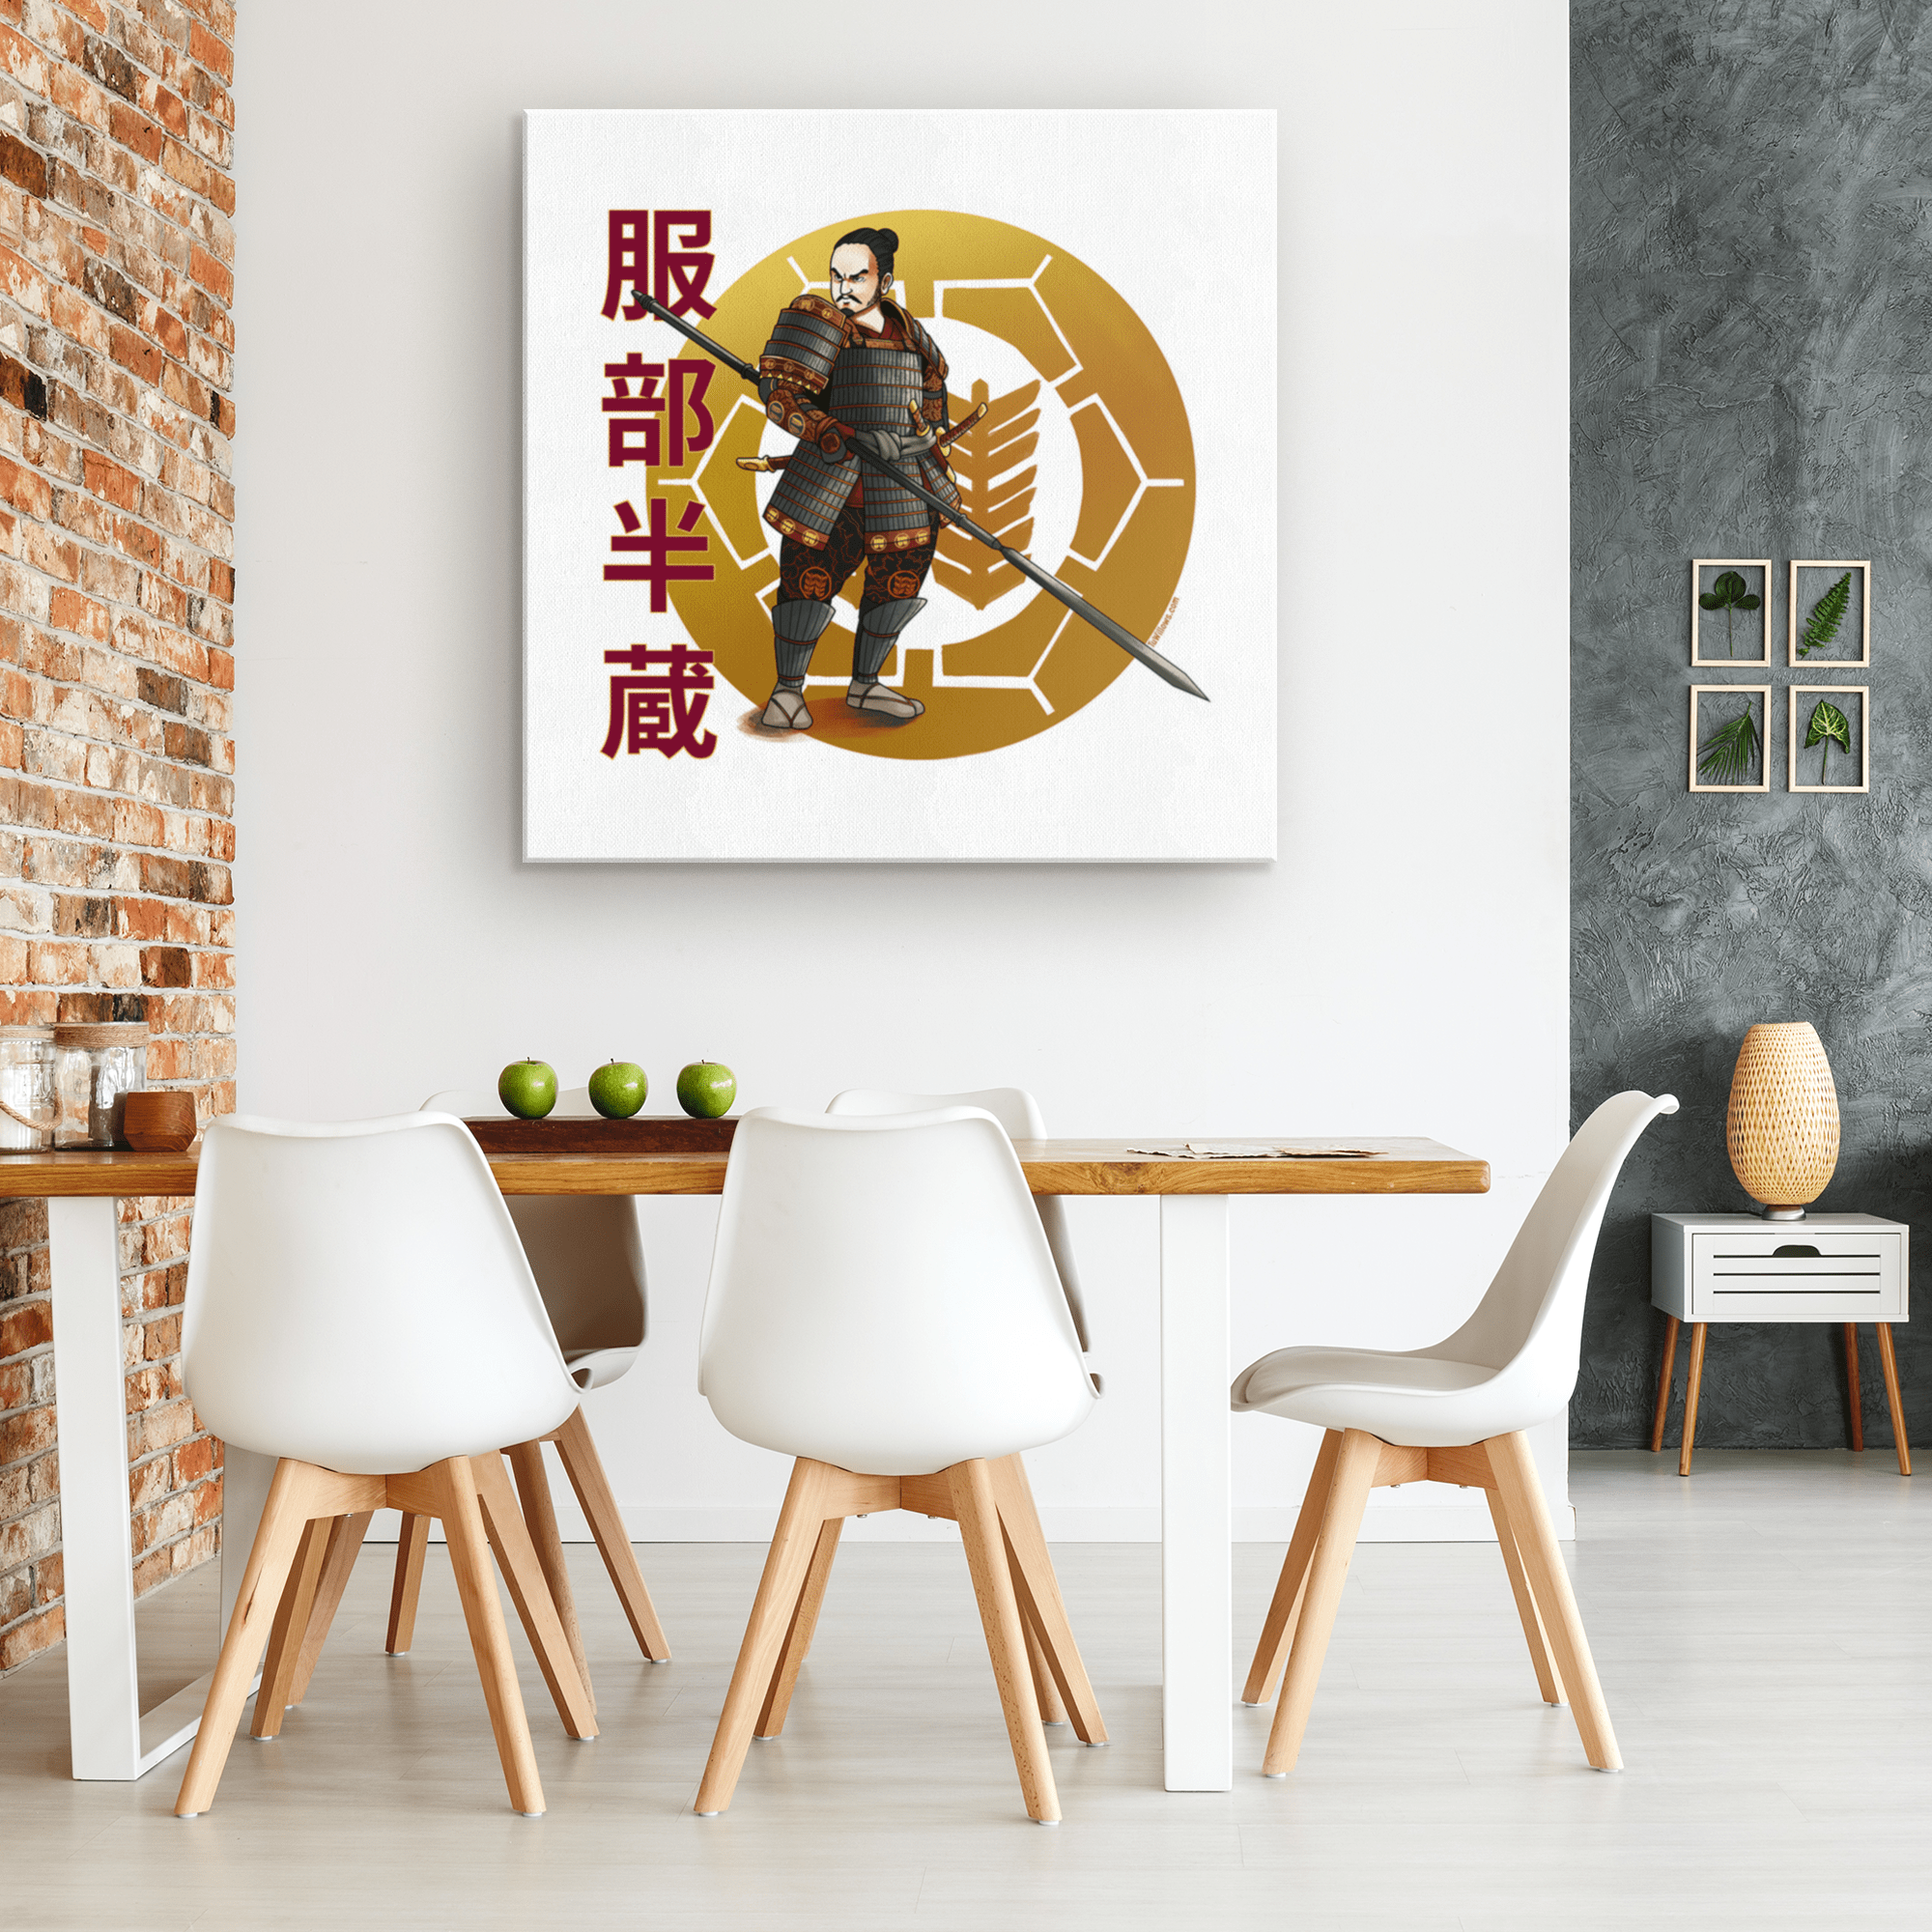 Hattori Hanzo's Spear - Canvas Art Canvas Wall Art 3 - TuWillows